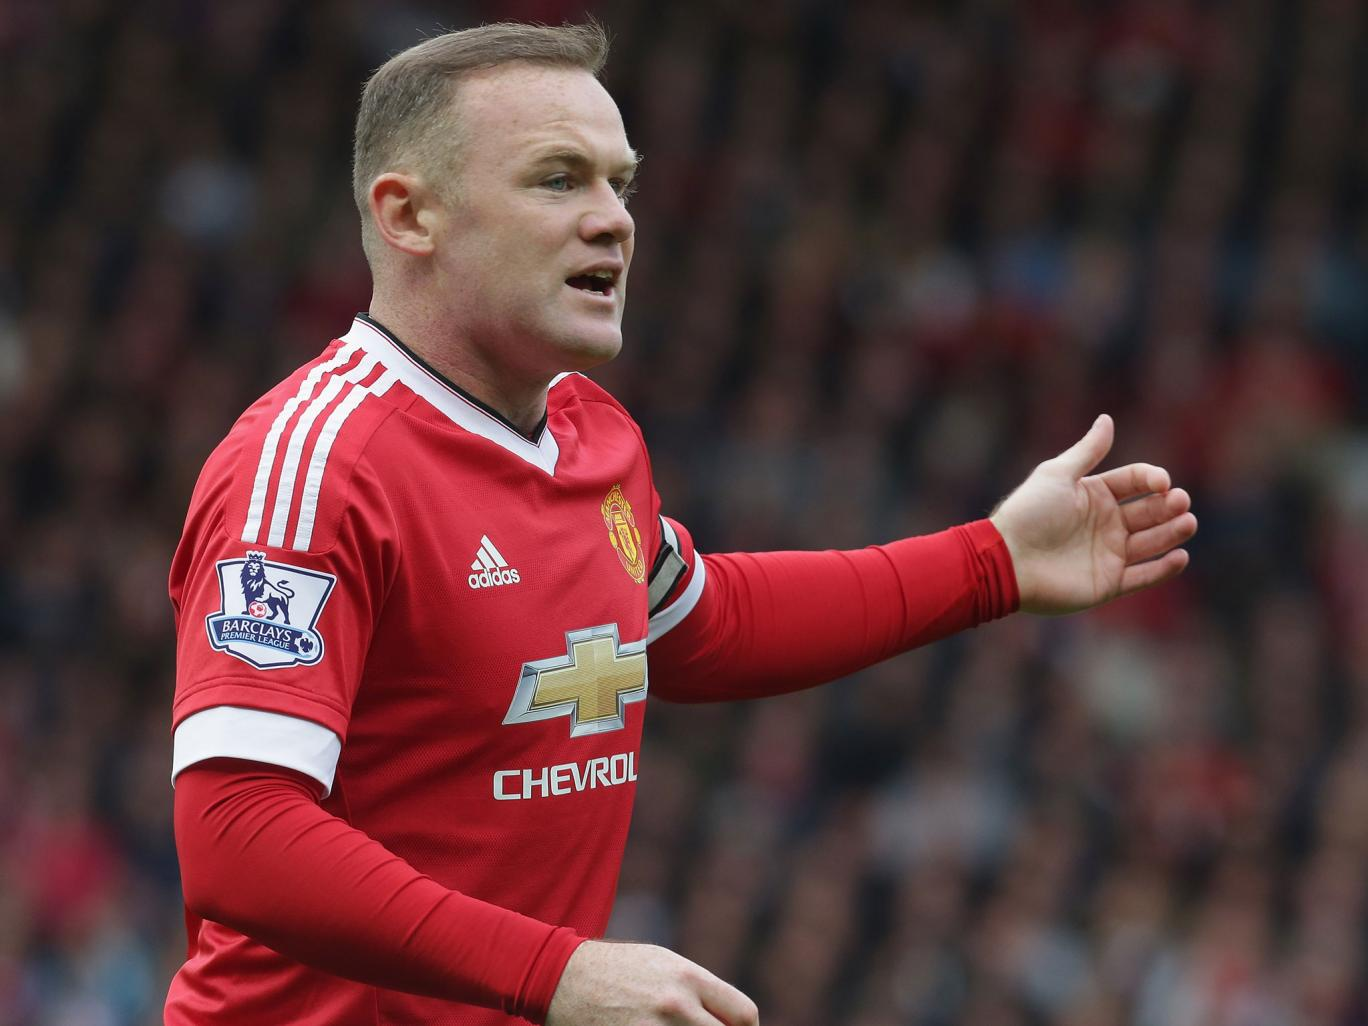 Wayne Rooney Wallpapers High Resolution and Quality Download